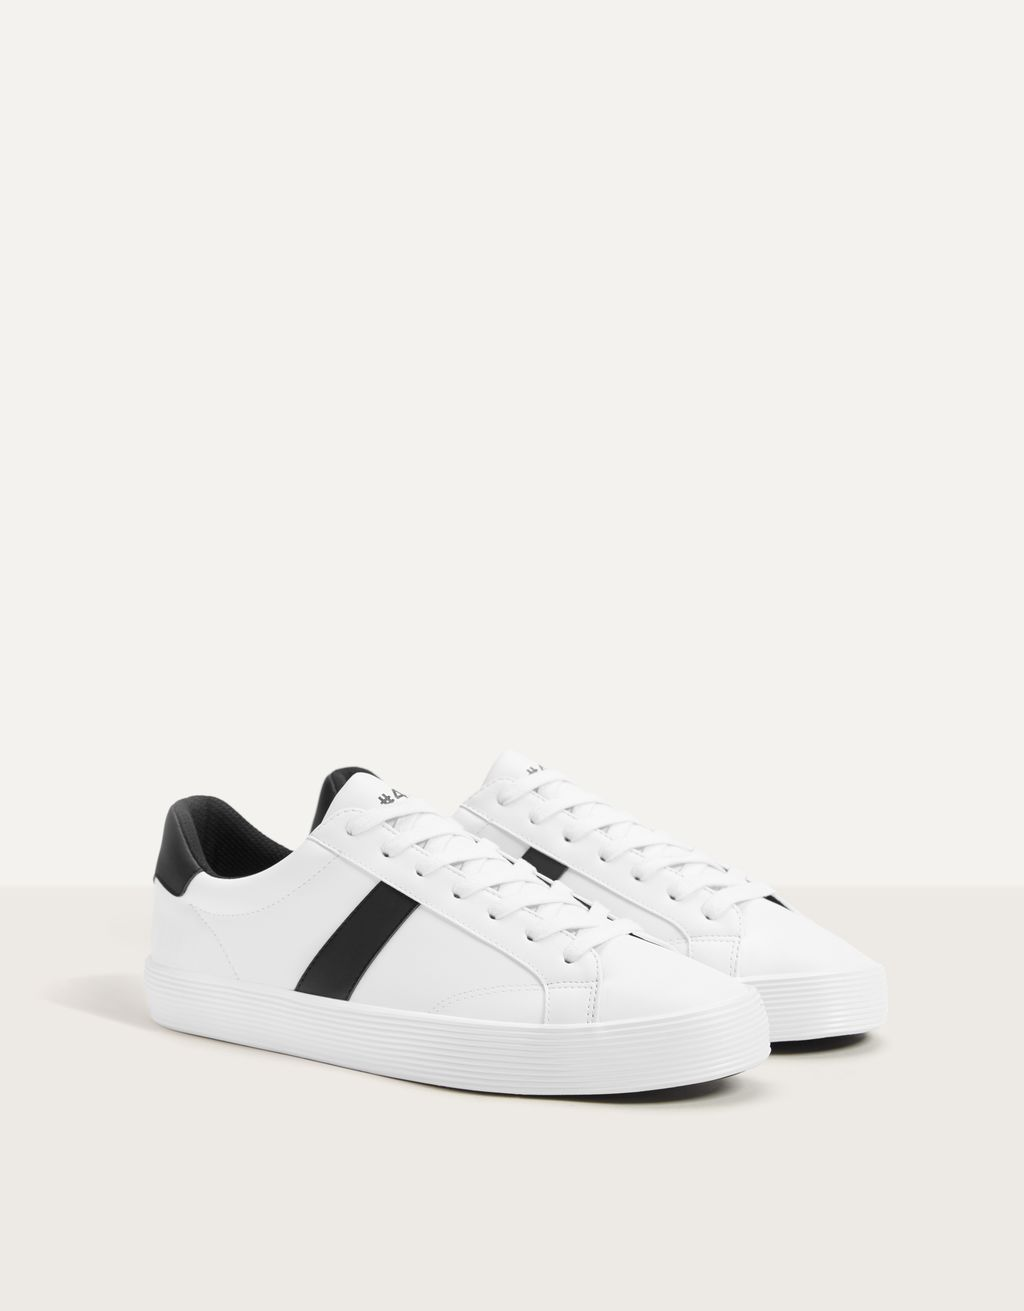 Men's trainers with side detail